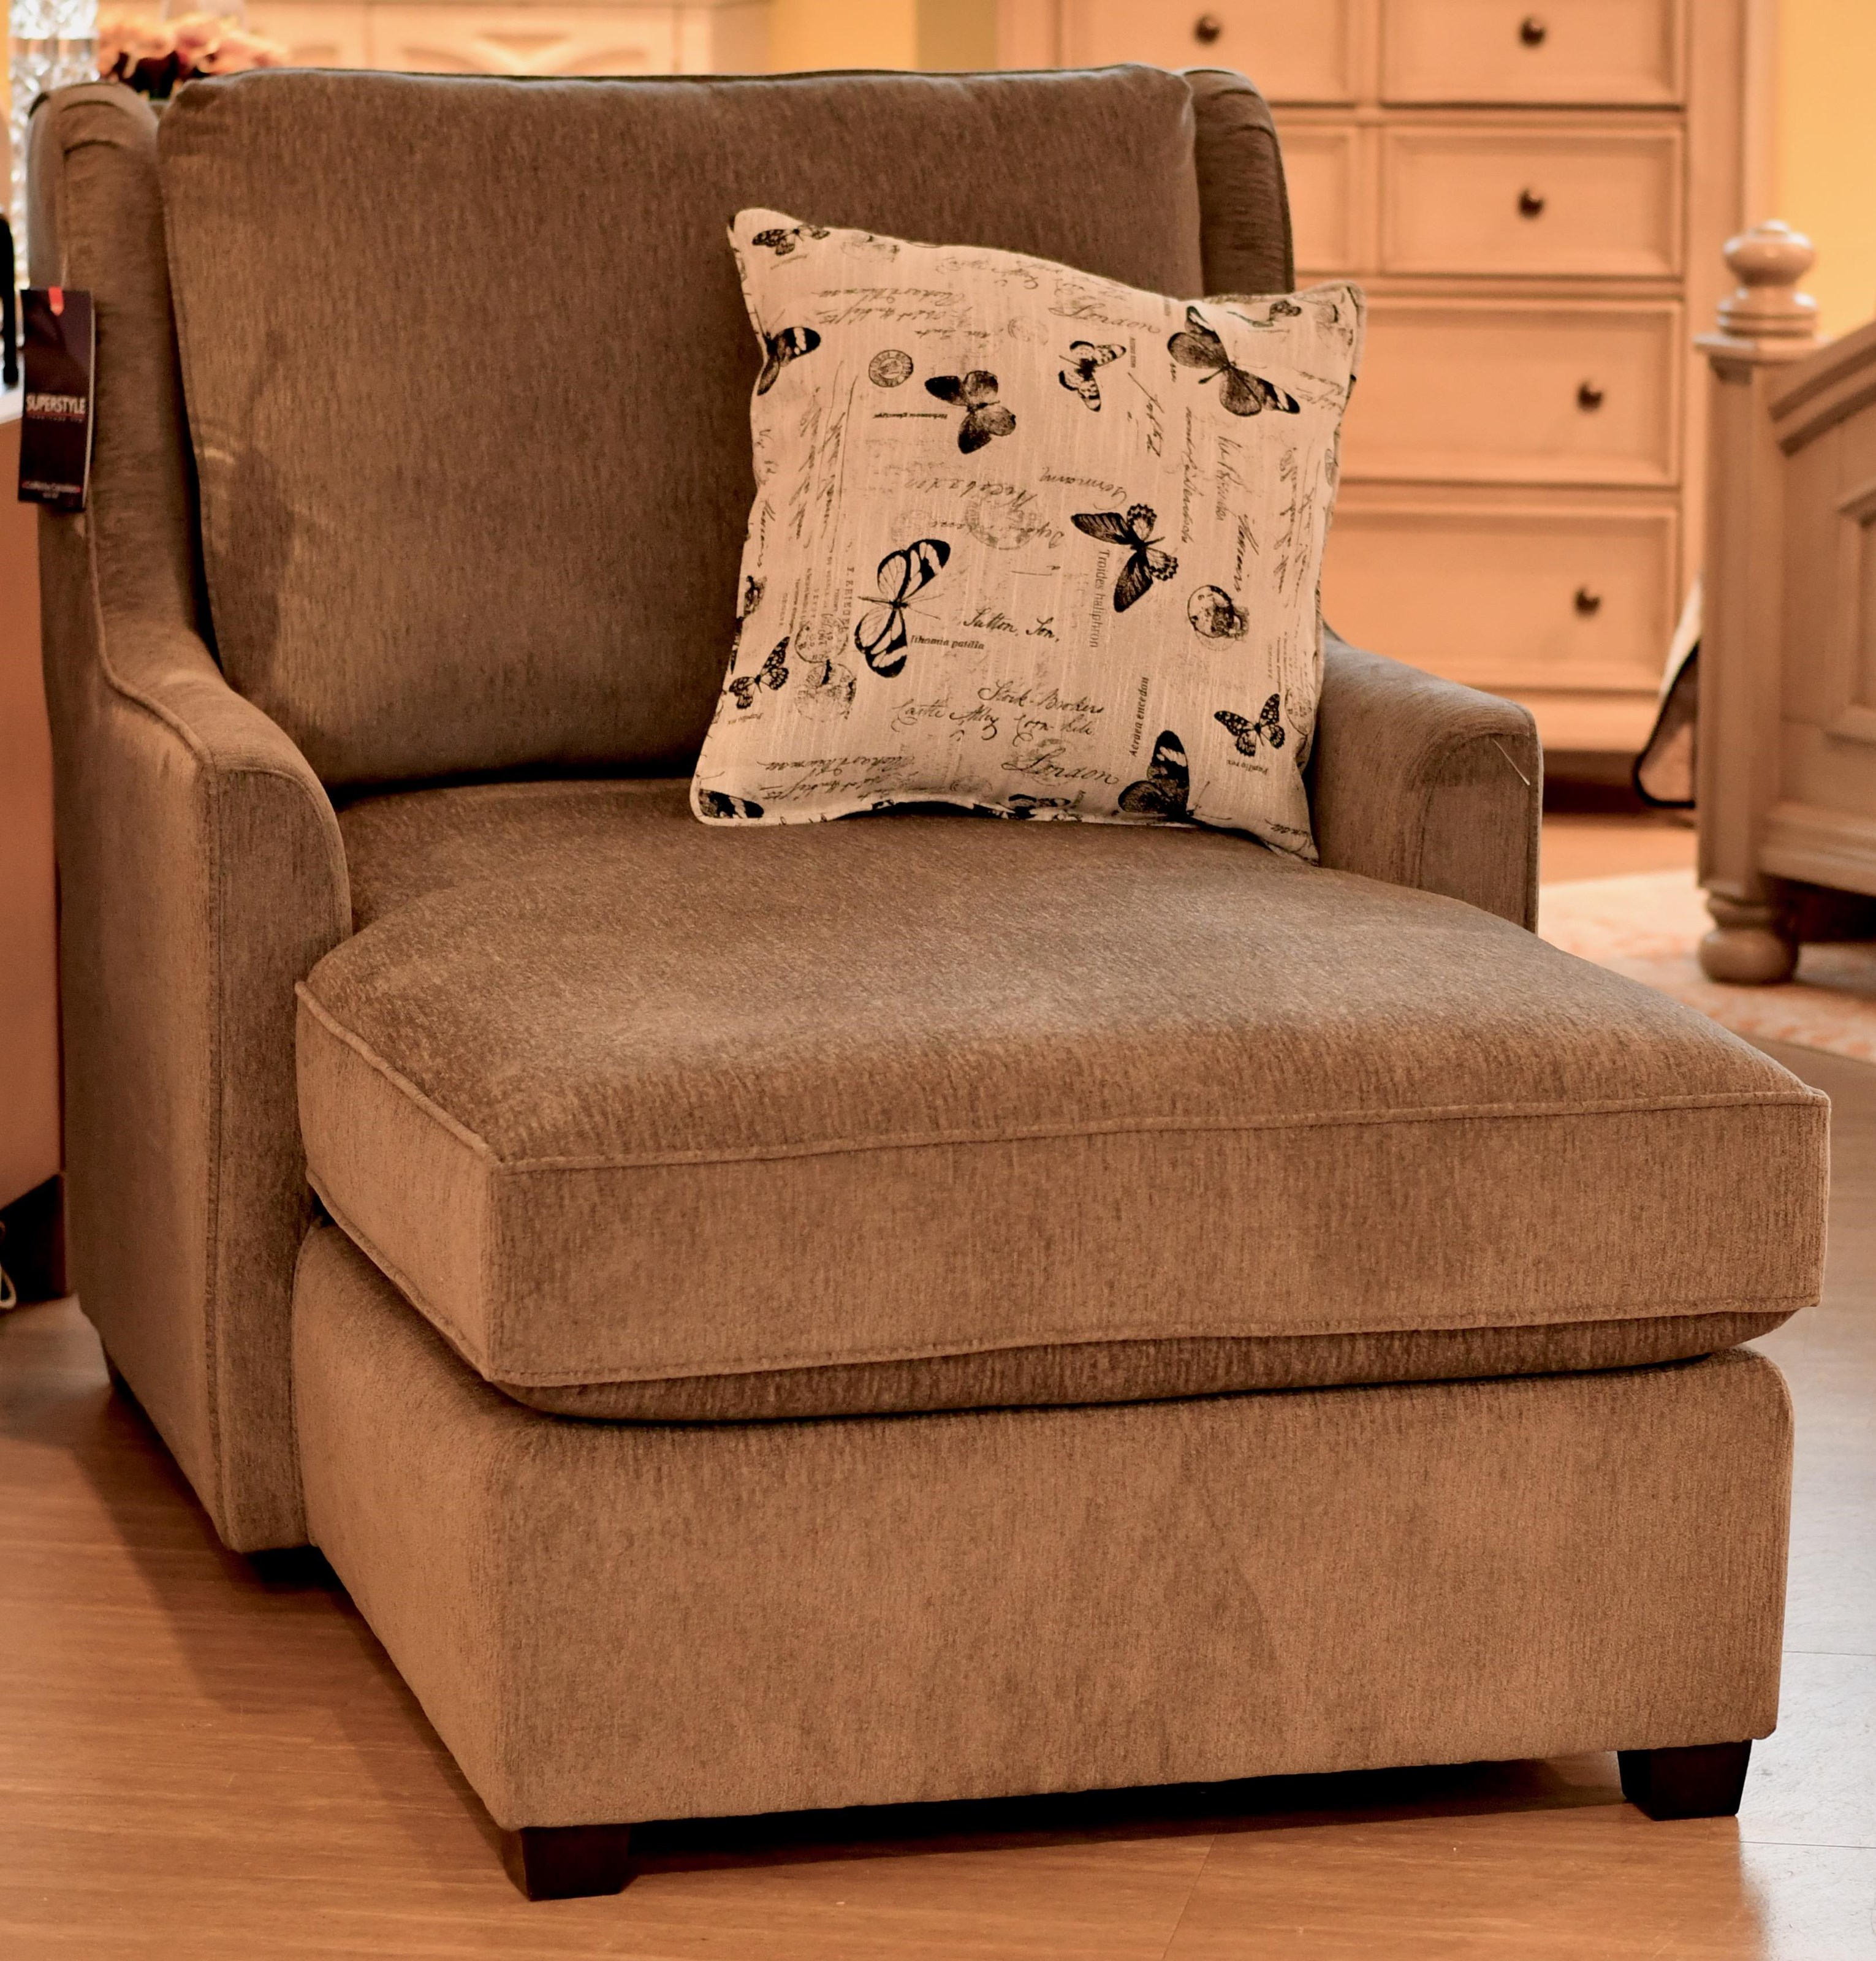 Evolution Designs Chaise by Southside Designs at Bennett's Furniture and Mattresses